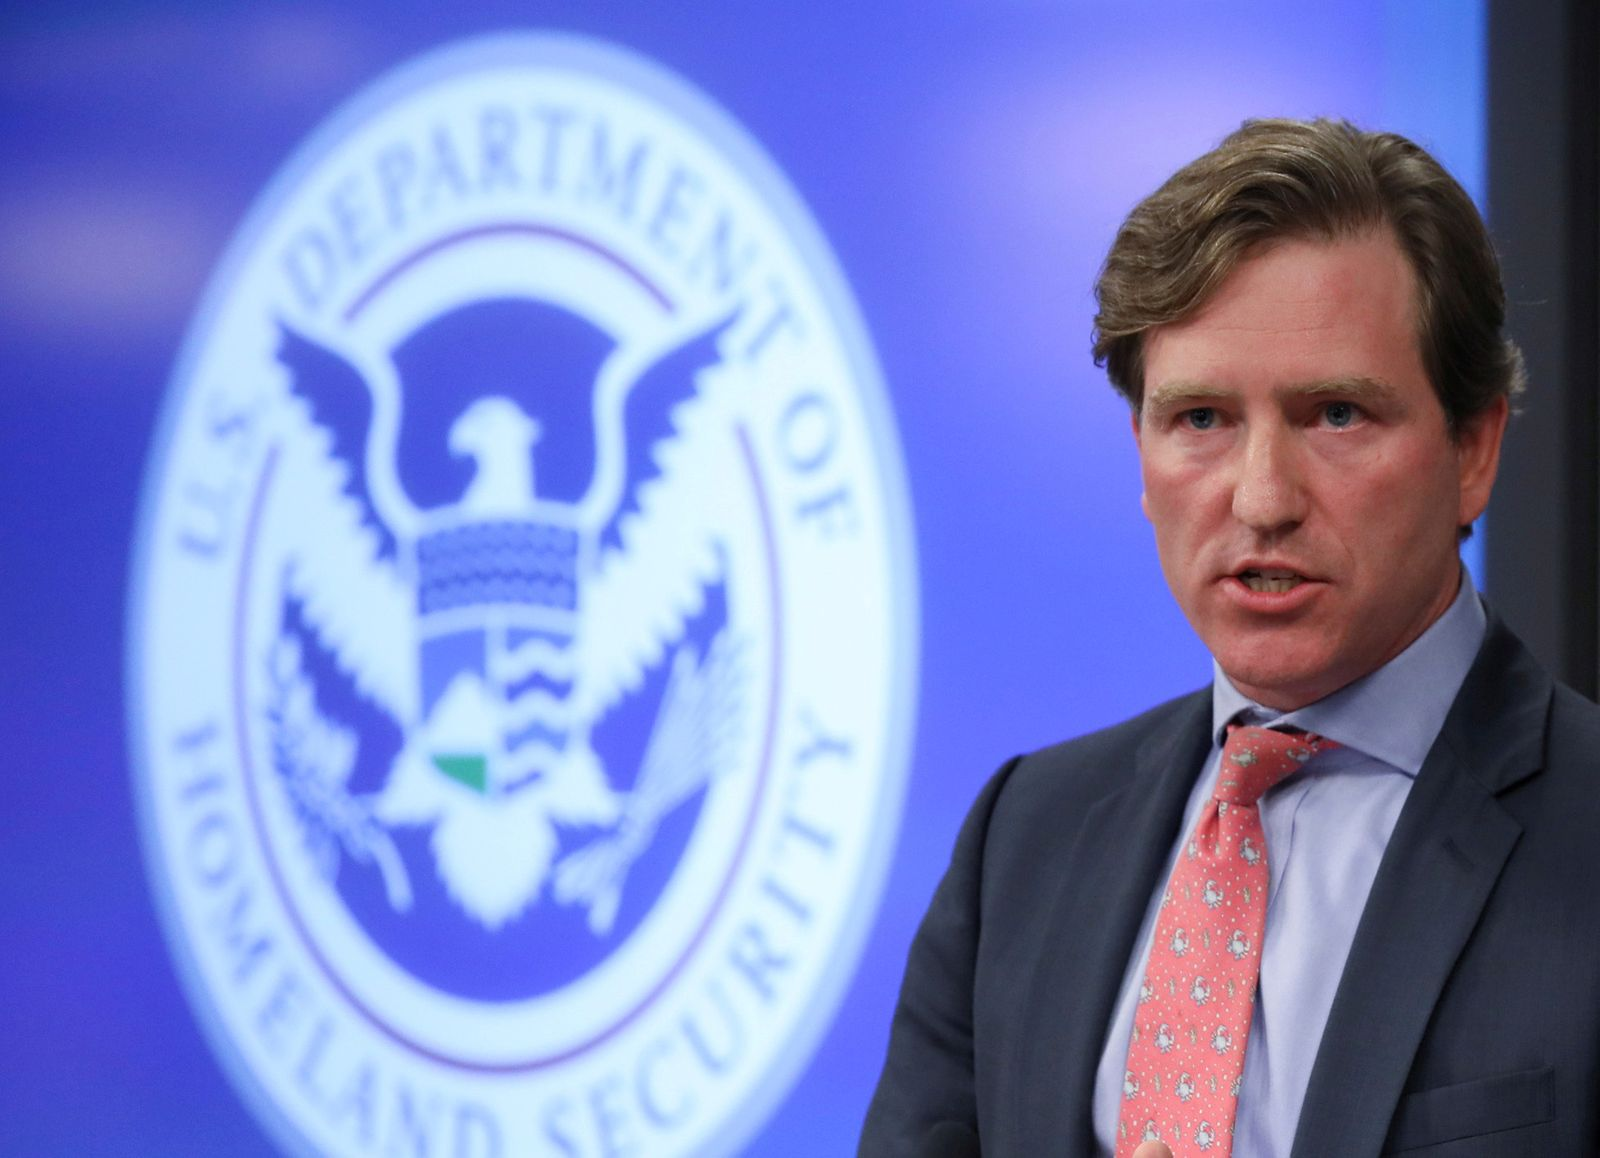 FILE PHOTO - U.S. Department of Homeland Security Under Secretary Chris Krebs speaks to reporters at the DHS Election Operations Center and National Cybersecurity and Communications Integration Center (NCCIC) in Arlington